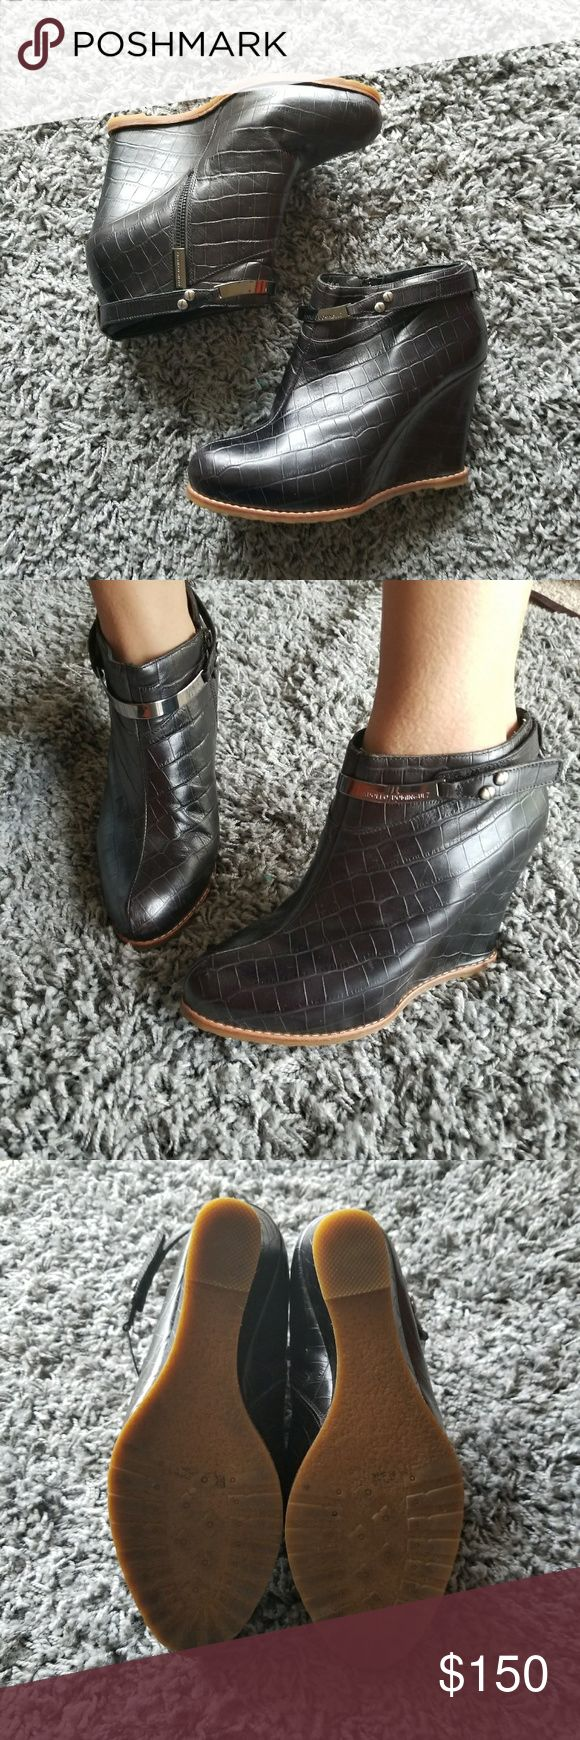 SALE🛍️Ankle  leather Boots Adolfo Dominguez Ankle  leather Boots Adolfo Dominguez, worn once. Euc as seen in the pictures. Marked as a 40 but fits a 9 Adolfo Dominguez Shoes Ankle Boots & Booties